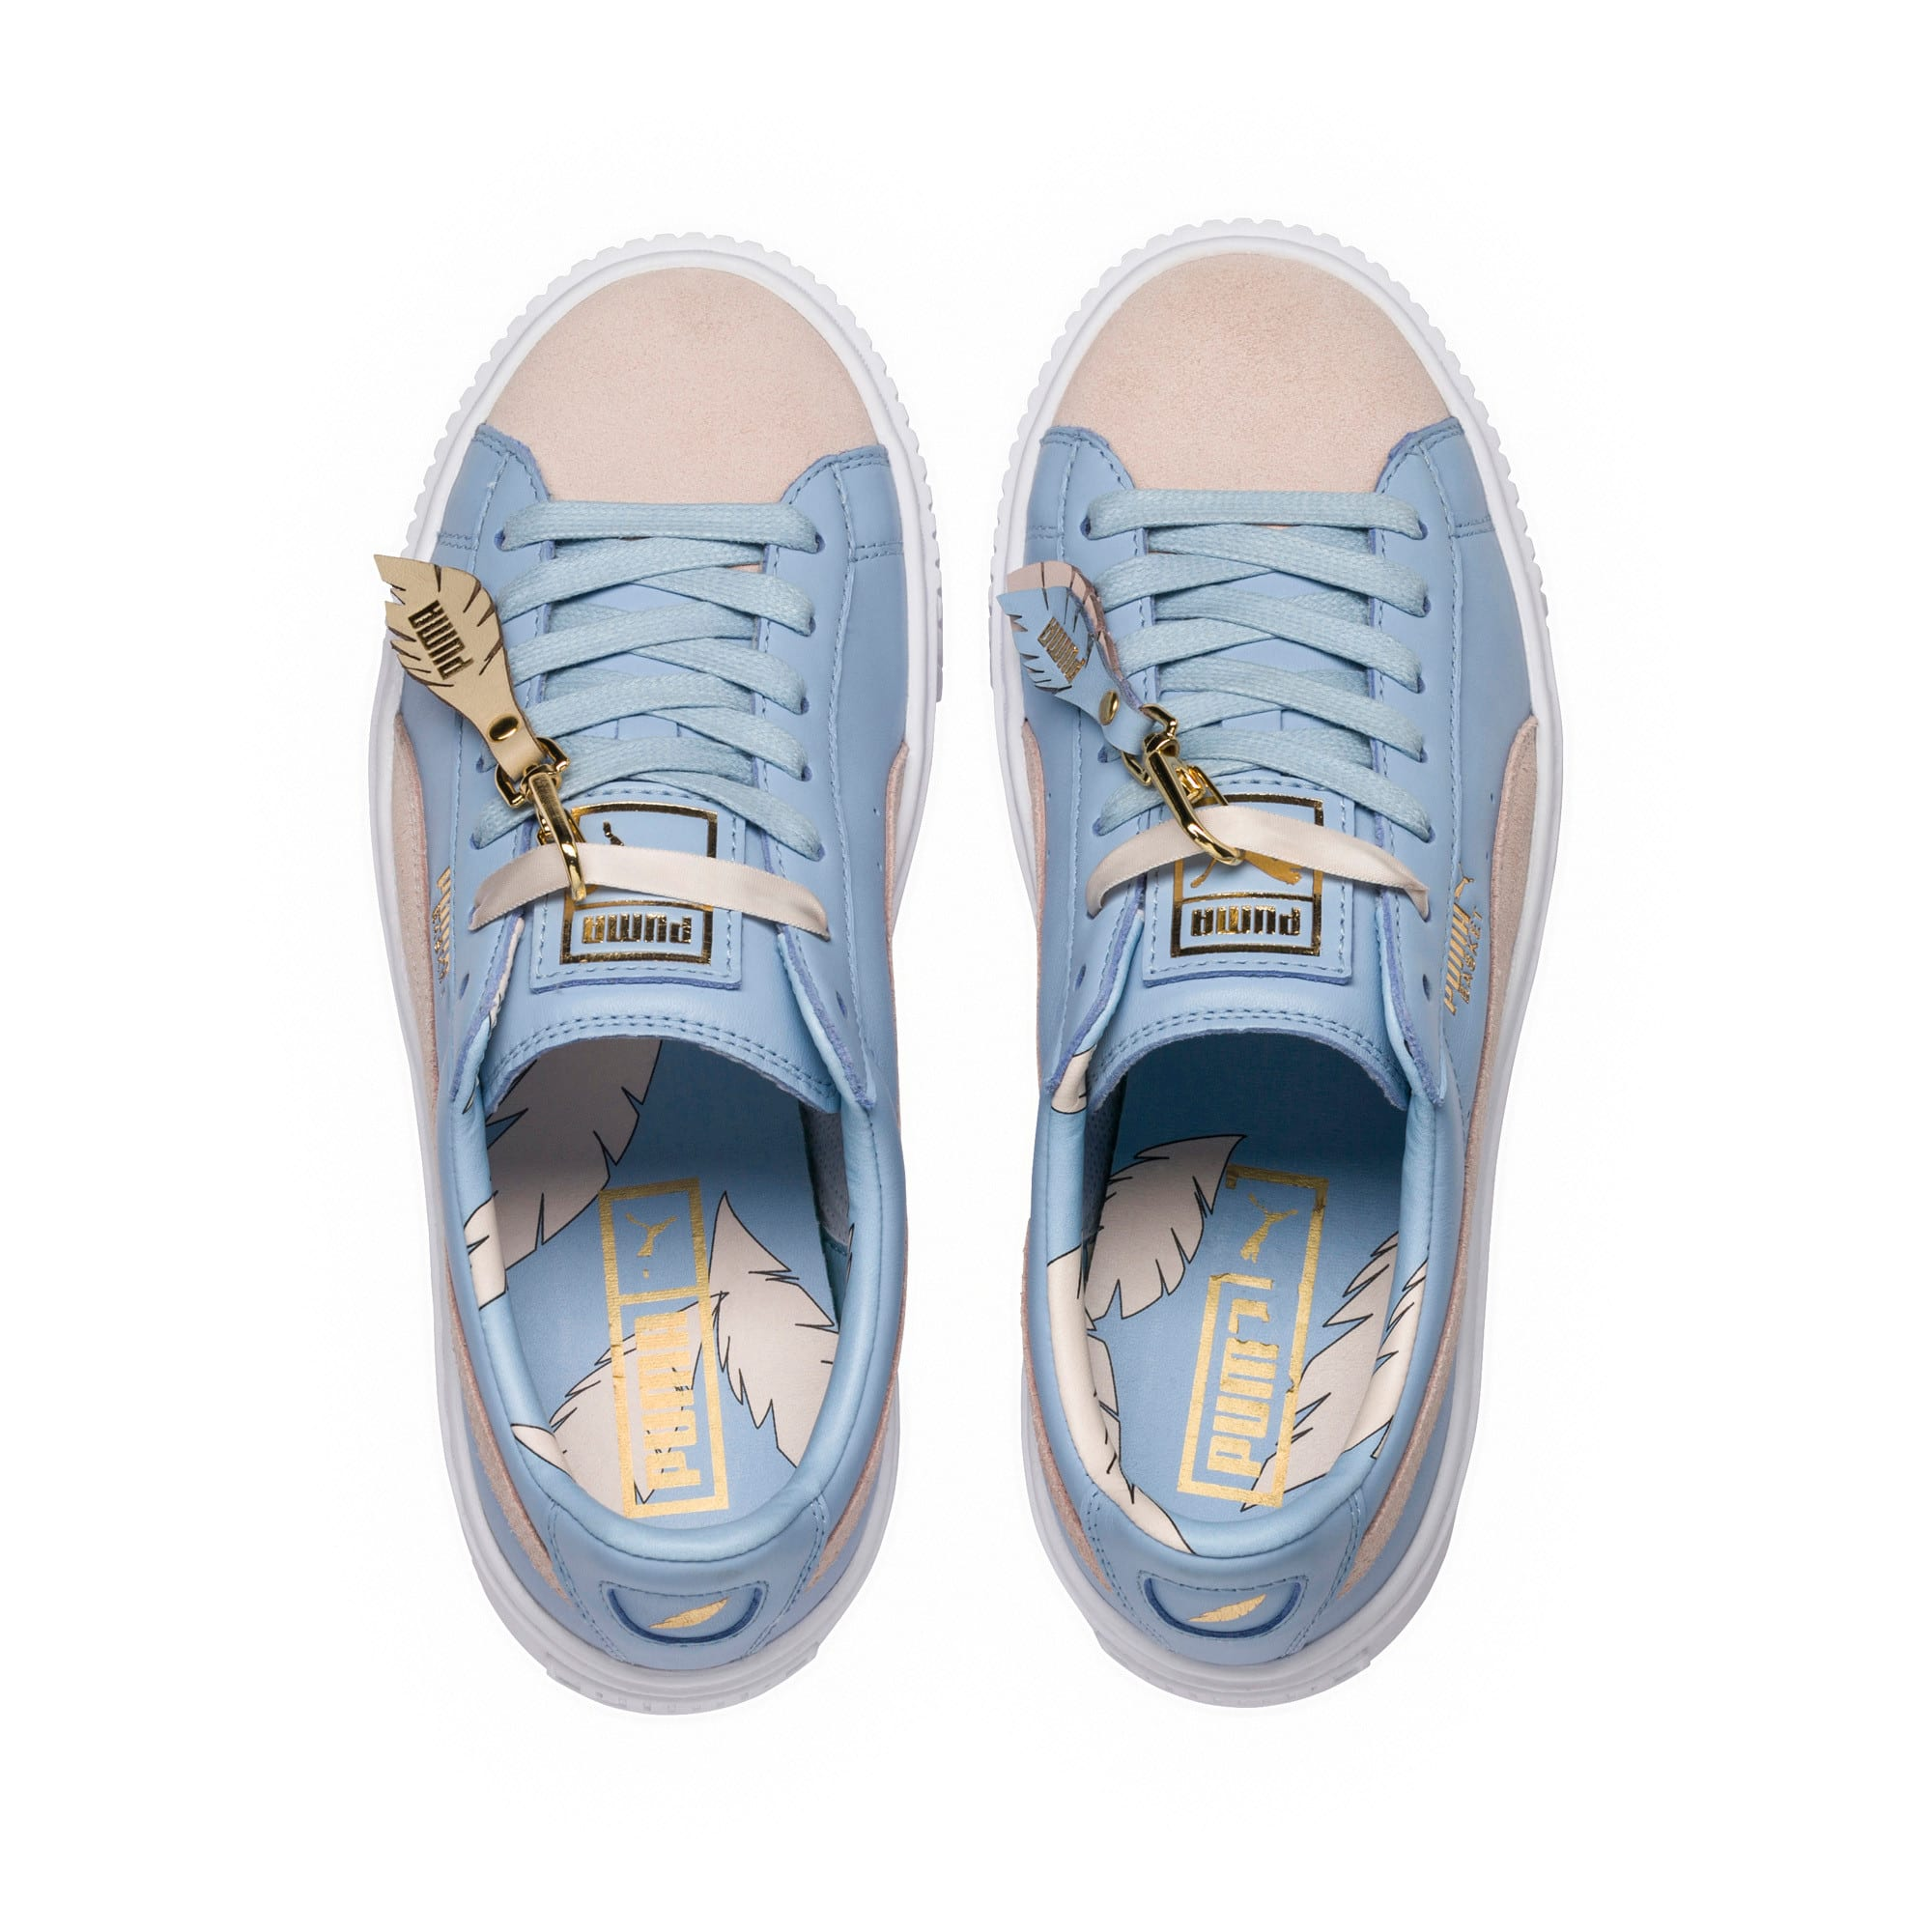 Thumbnail 5 of Basket Platform Coach Women's Trainers, Silver Peony-Cashmere Blue, medium-IND